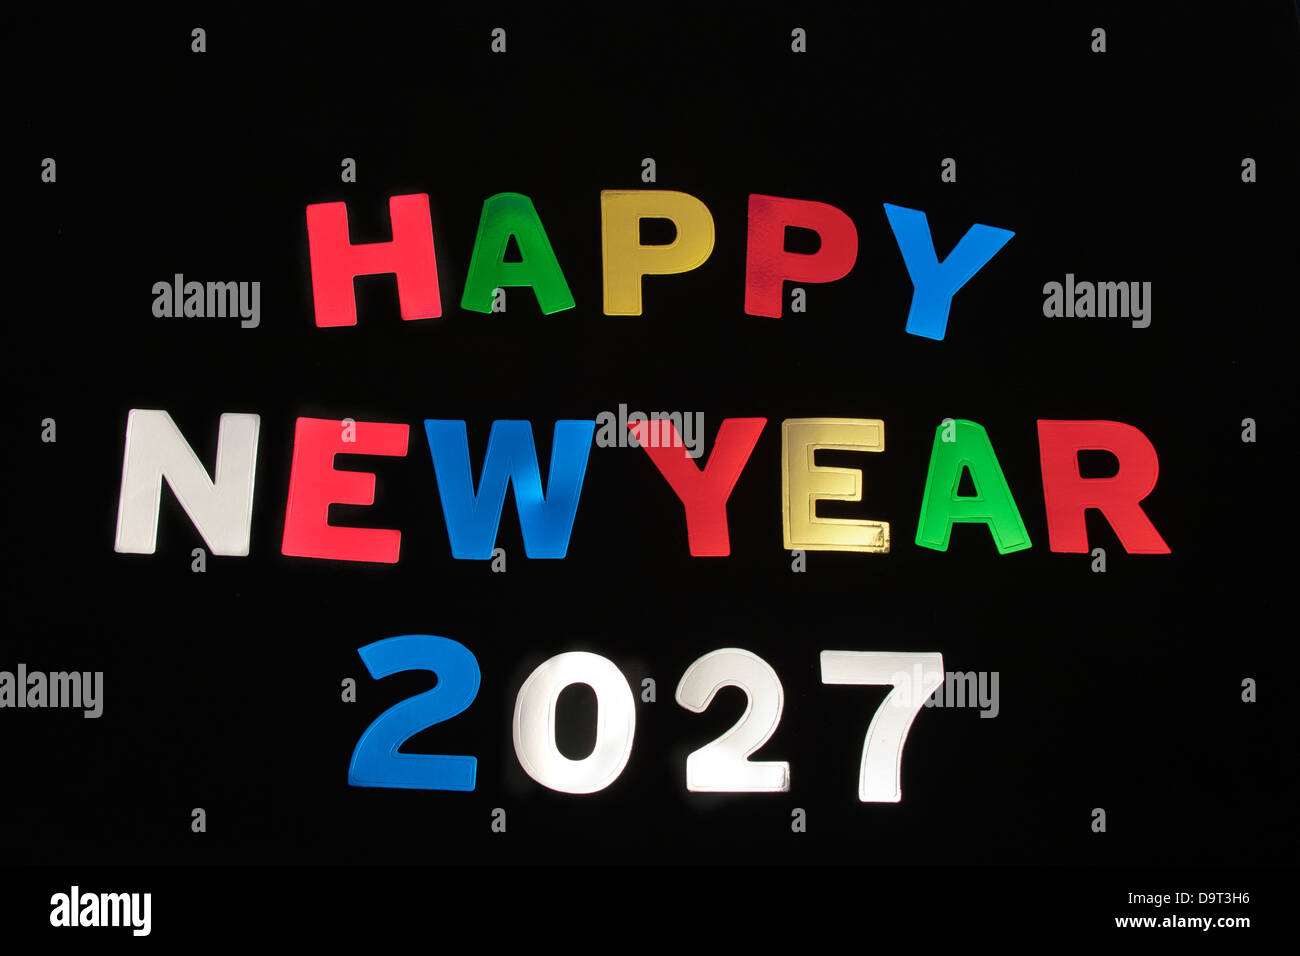 HAPPY NEW YEAR 2027Stock Photo